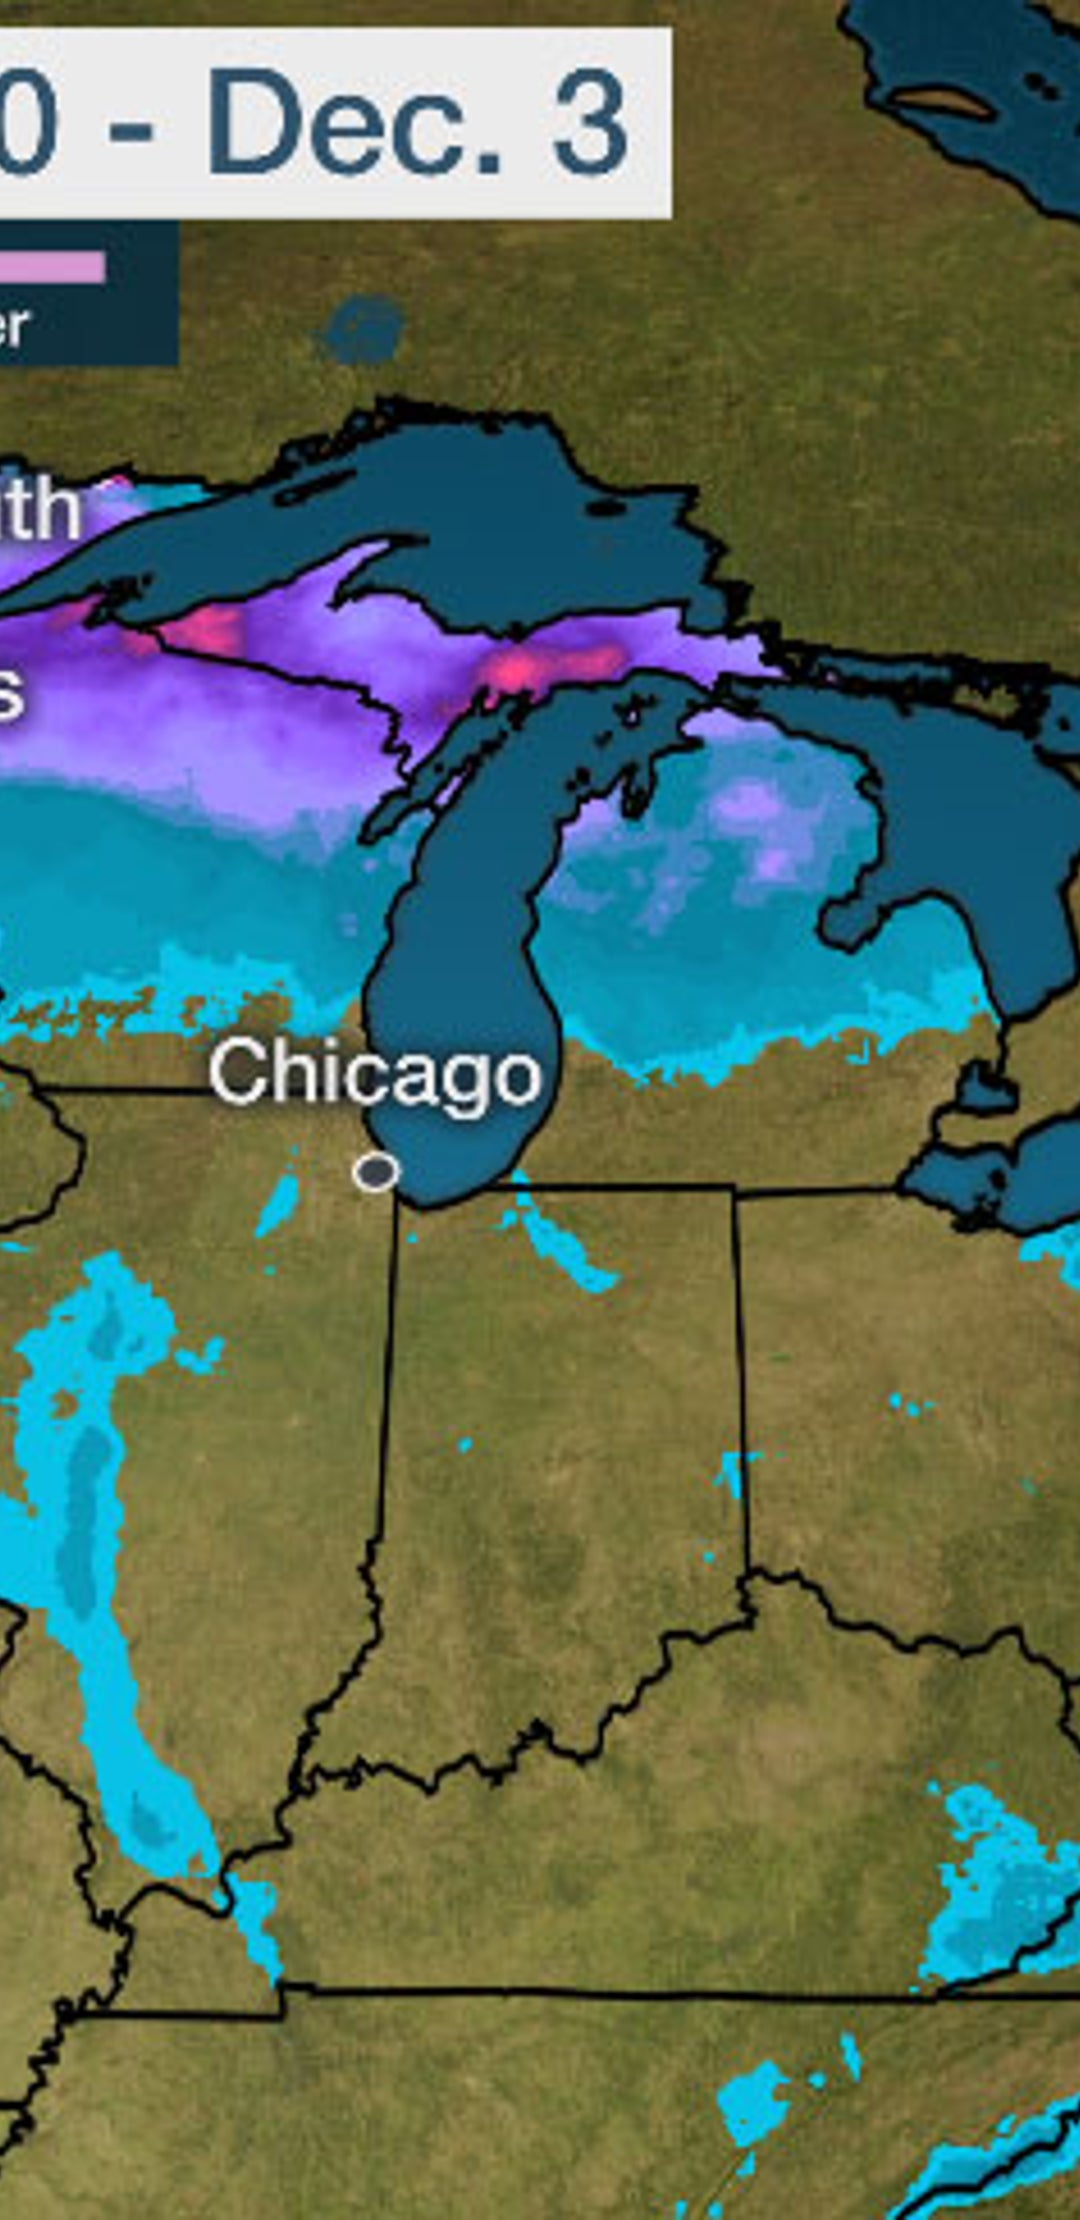 Cross Country Winter Storm Brought Snow Ice And Wind Thanksgiving Week Into Early December Recap The Weather Channel Articles From The Weather Channel Weather Com